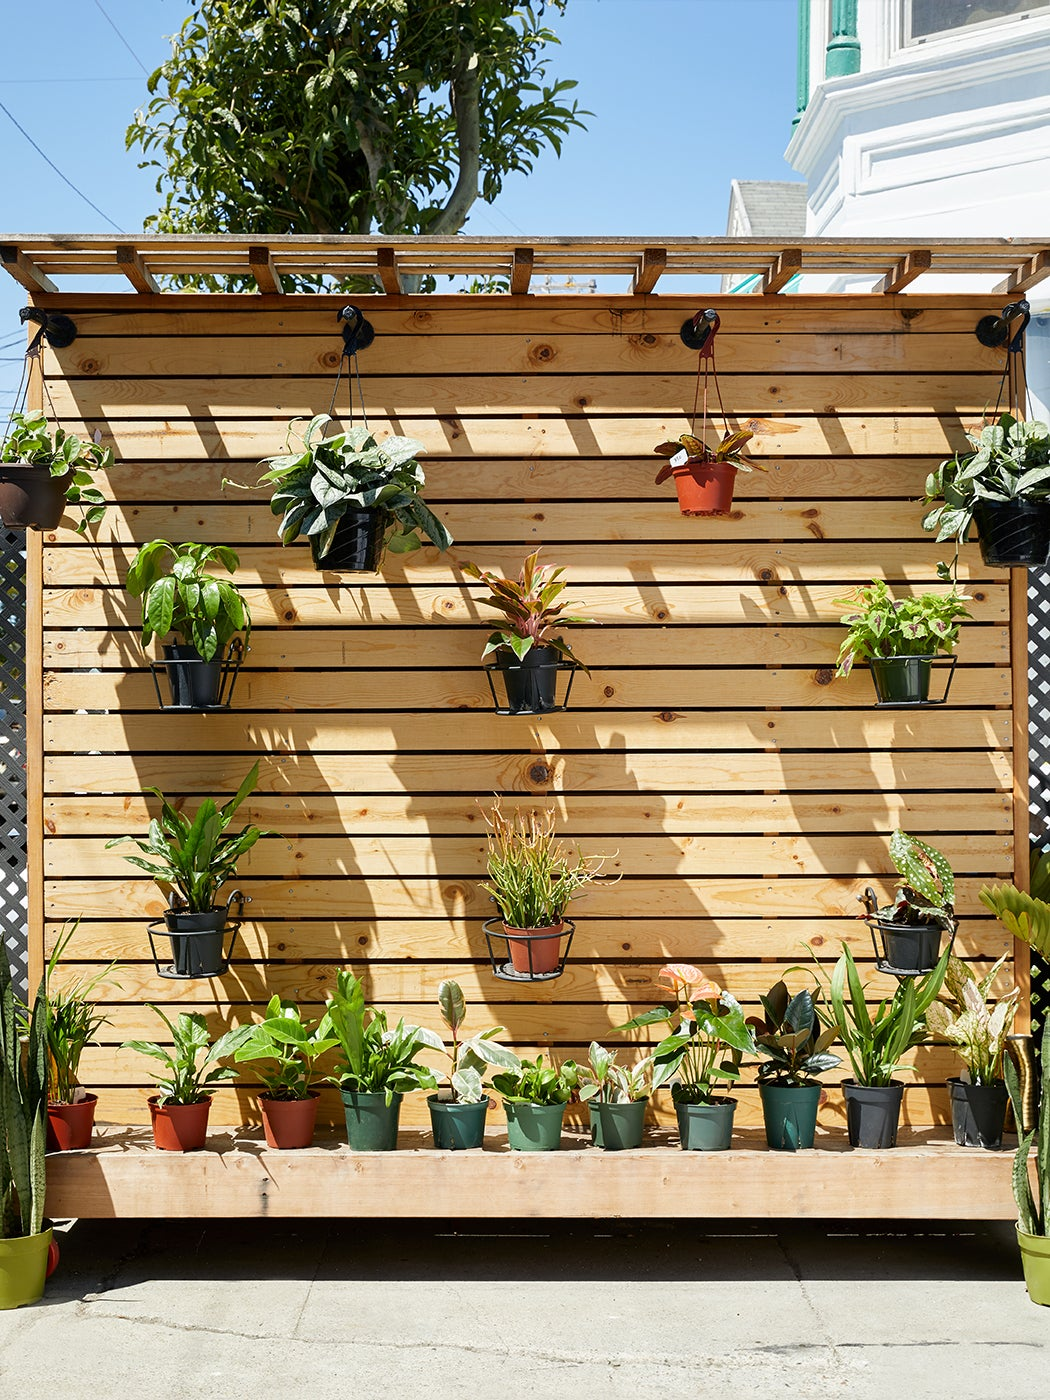 wood slat wall with hanging potted plants